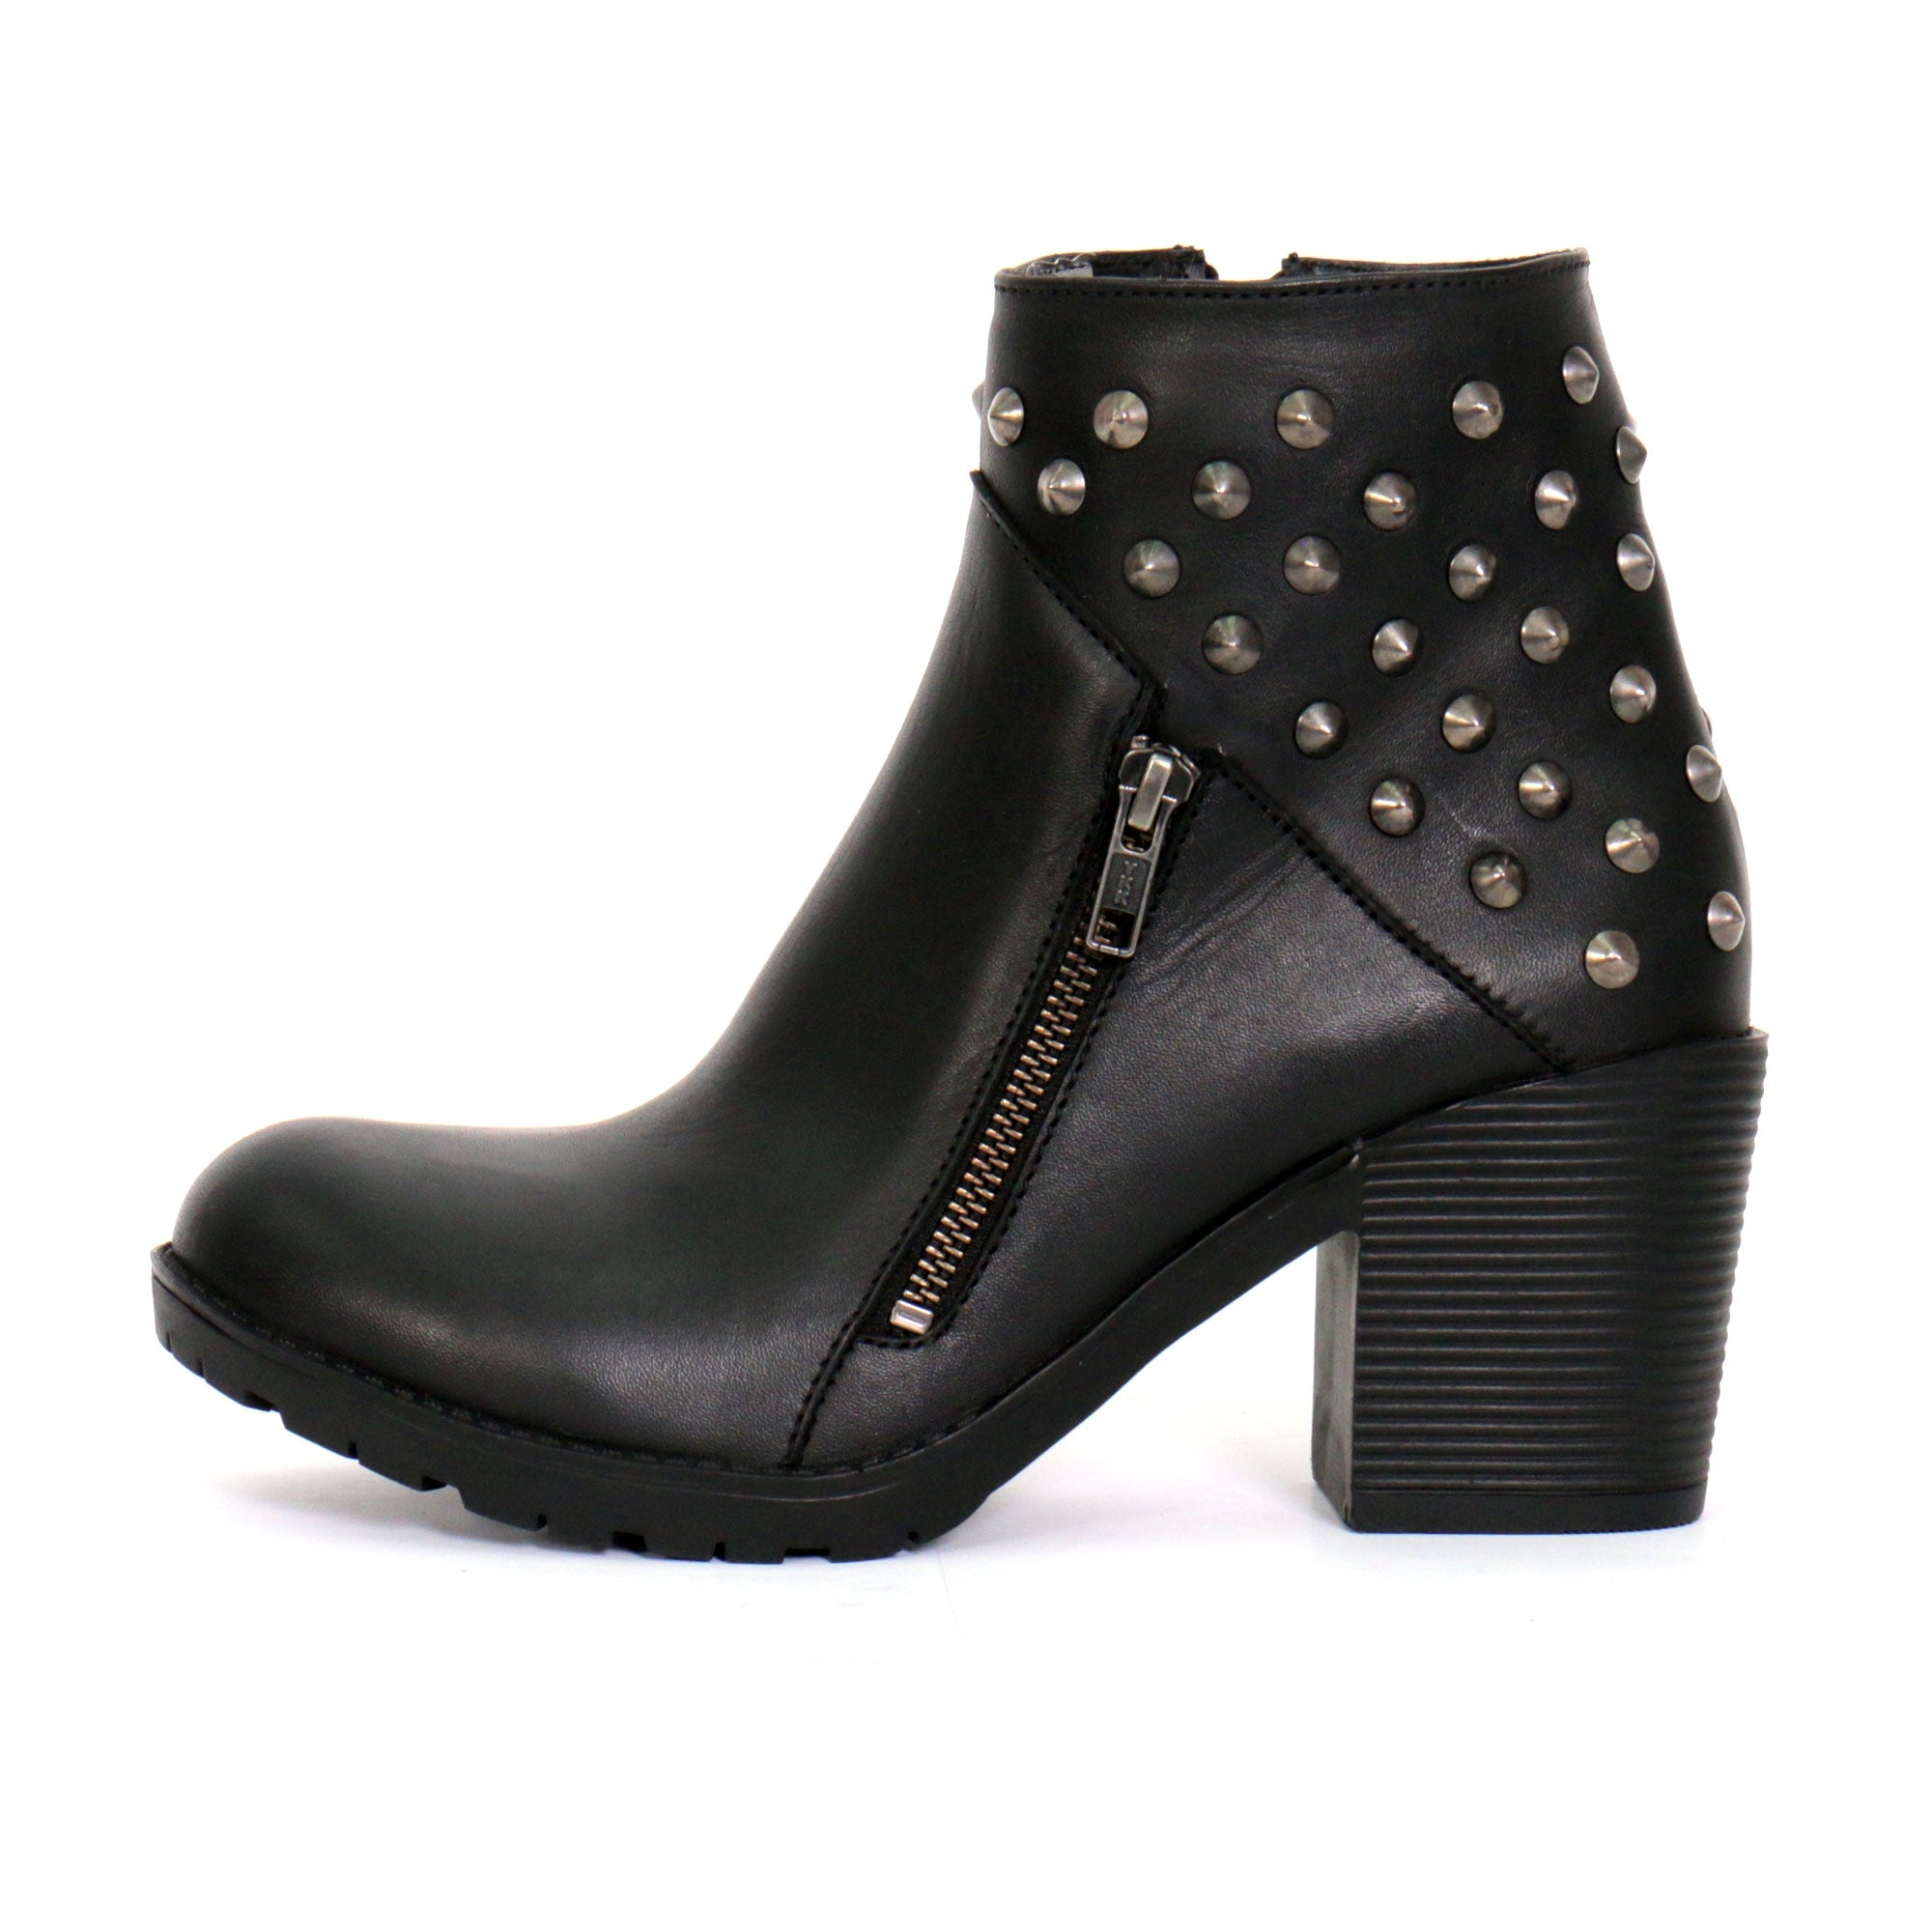 "Hot Leathers Ladies 5"" Studded Ankle Boots with Side Zippers"